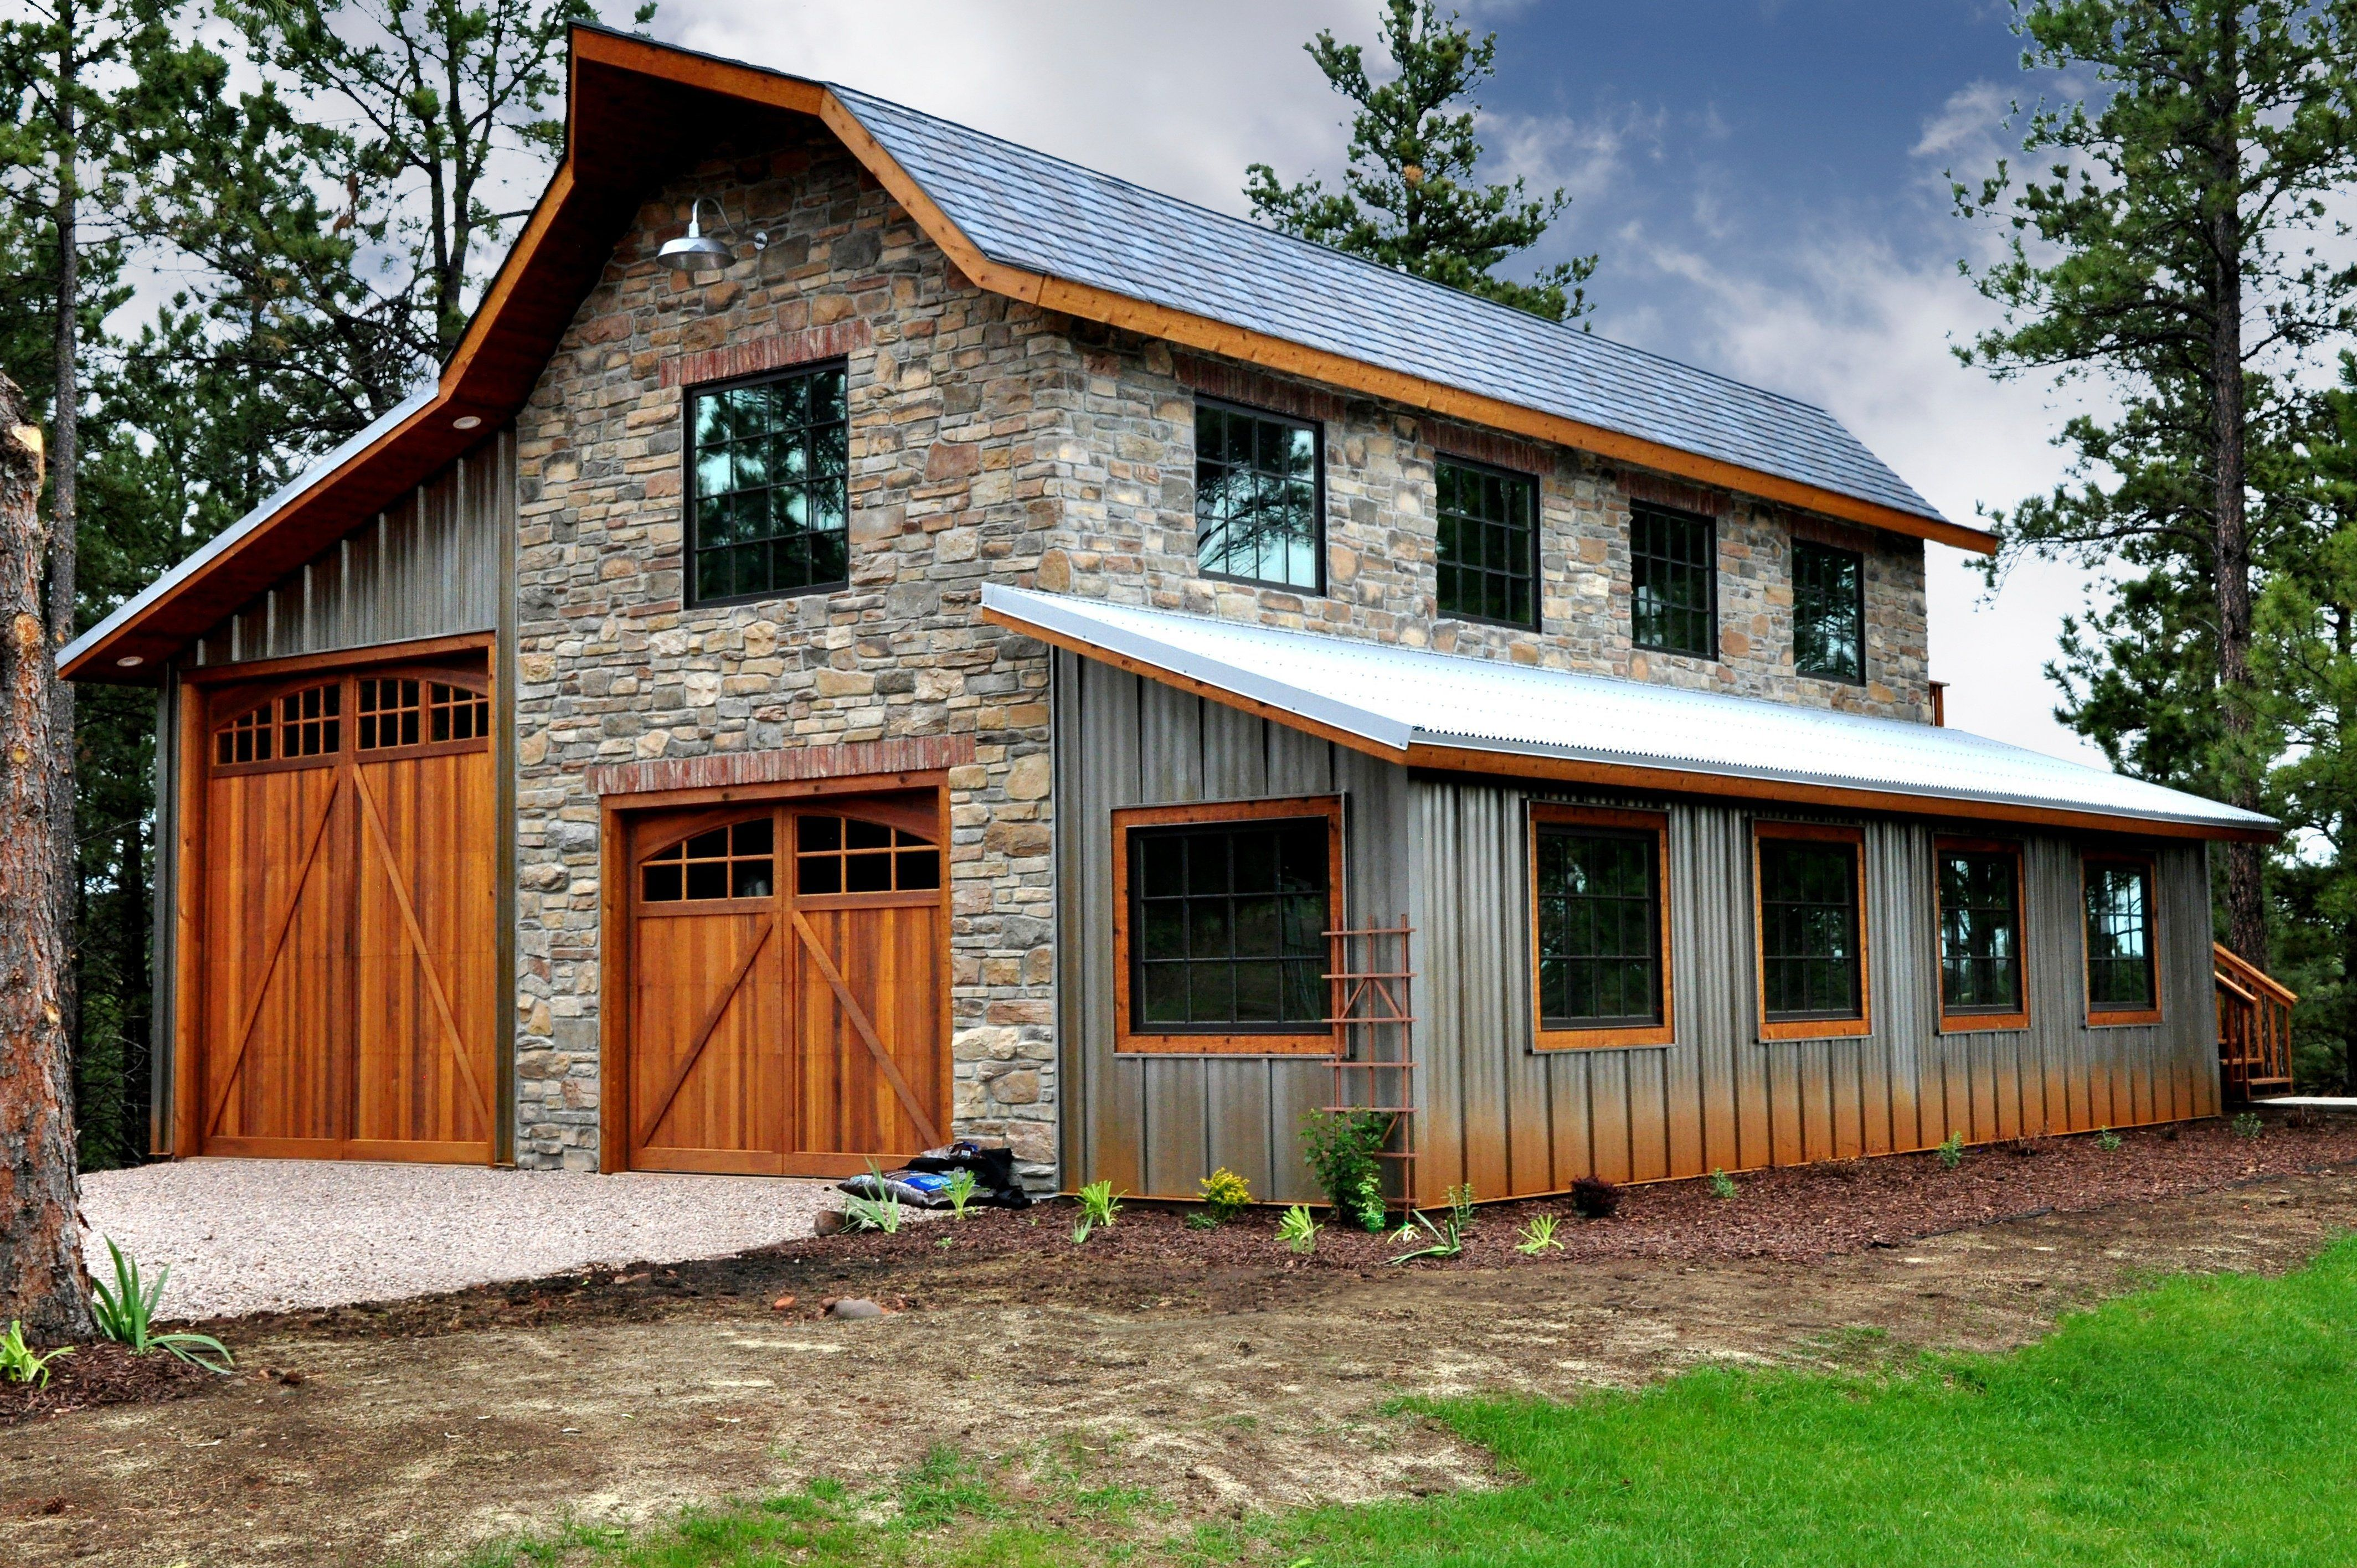 Rustic Metal Roofing, Siding, Interior & Decorative